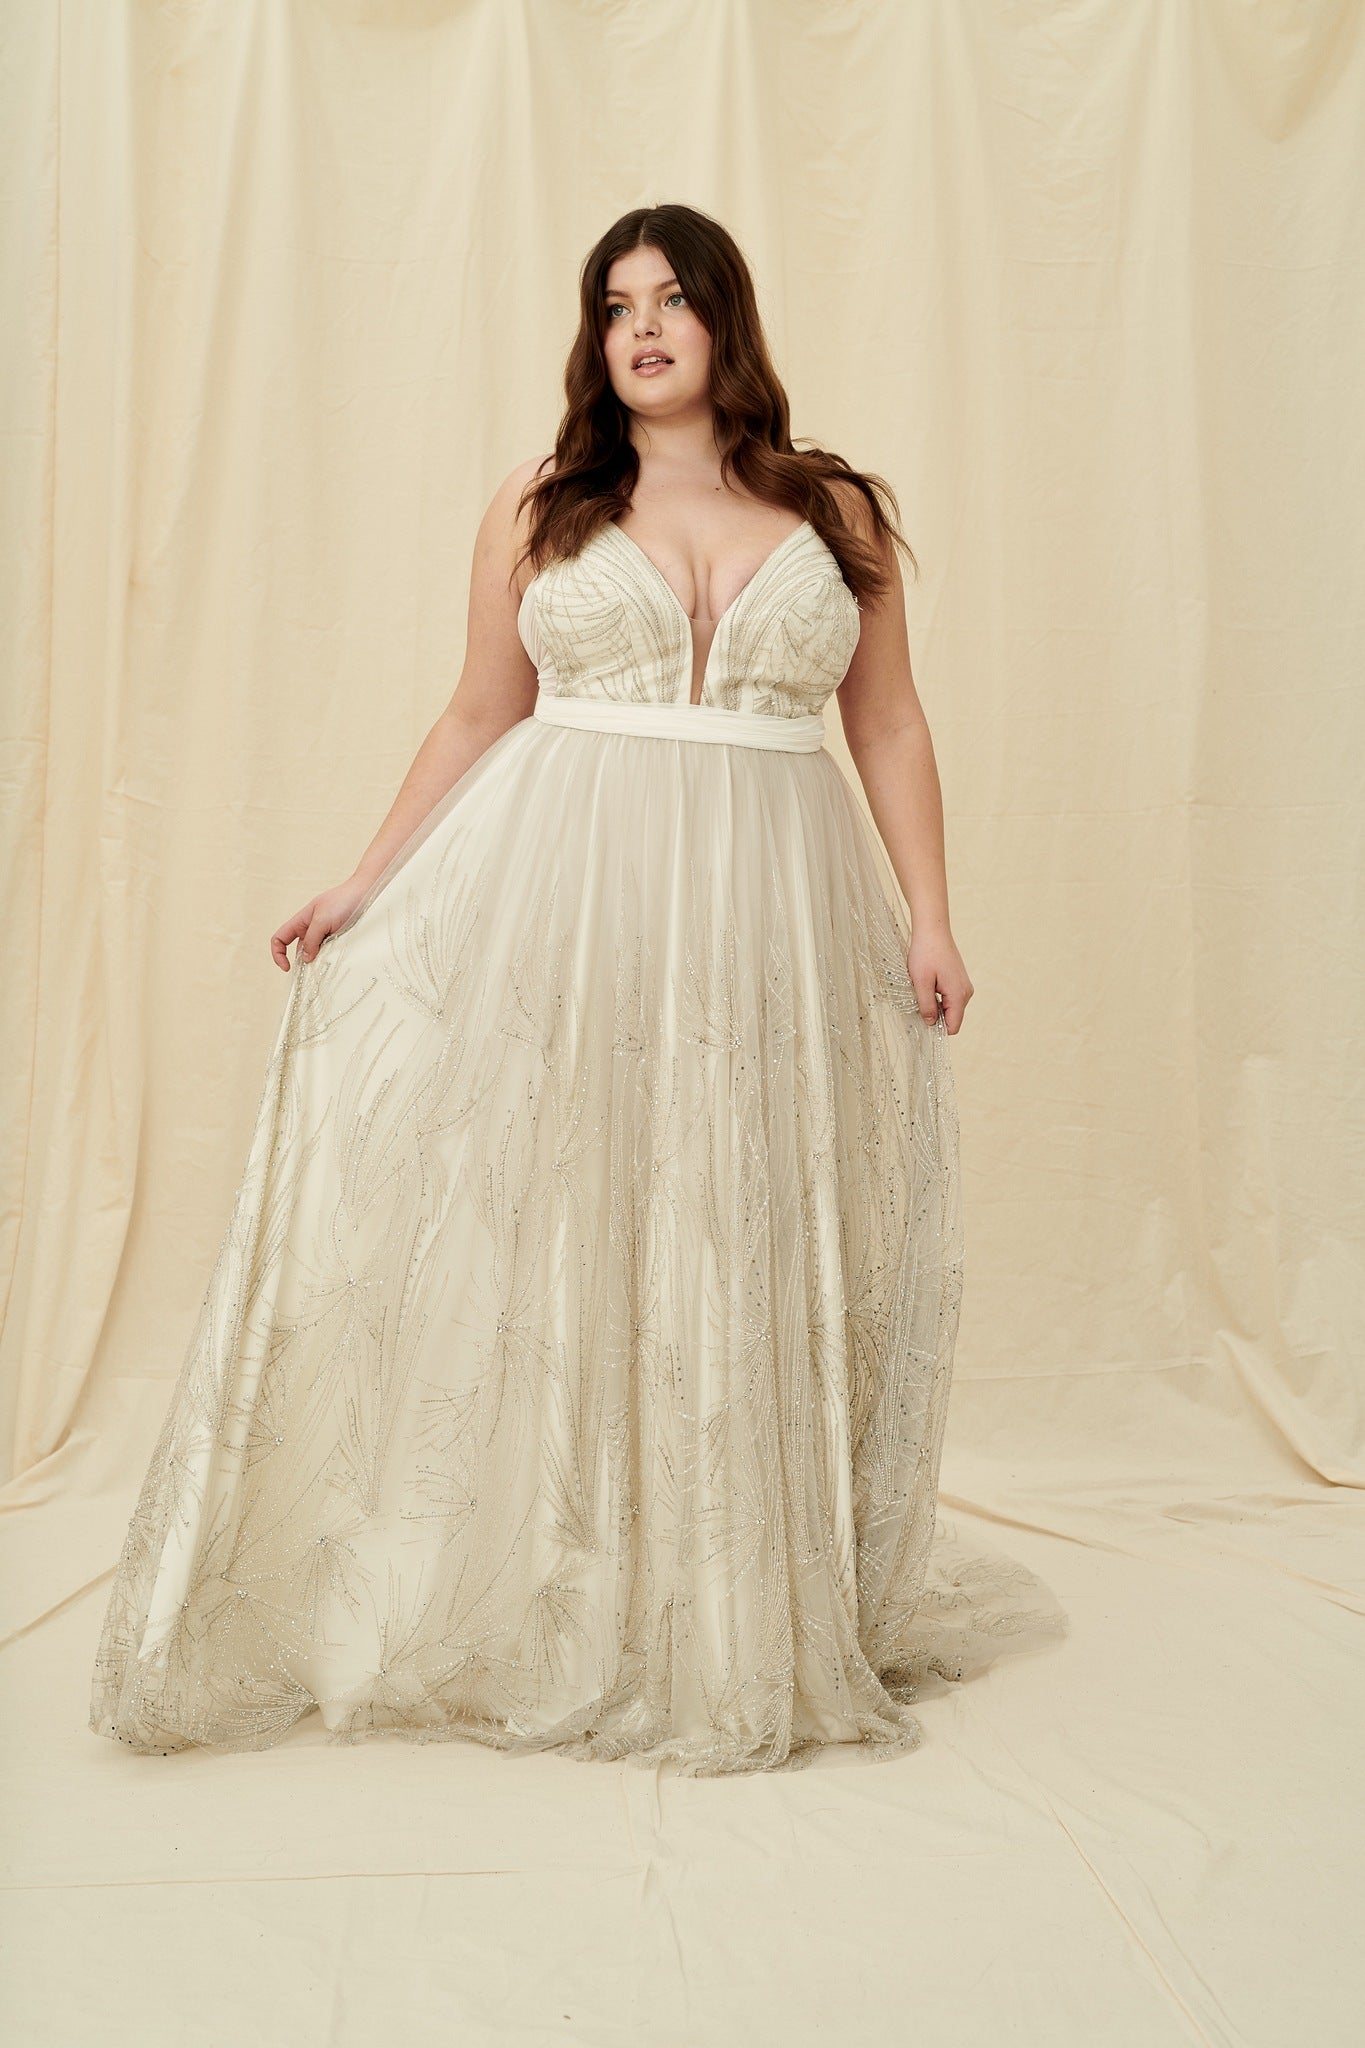 Art deco inspired plus-size wedding dress